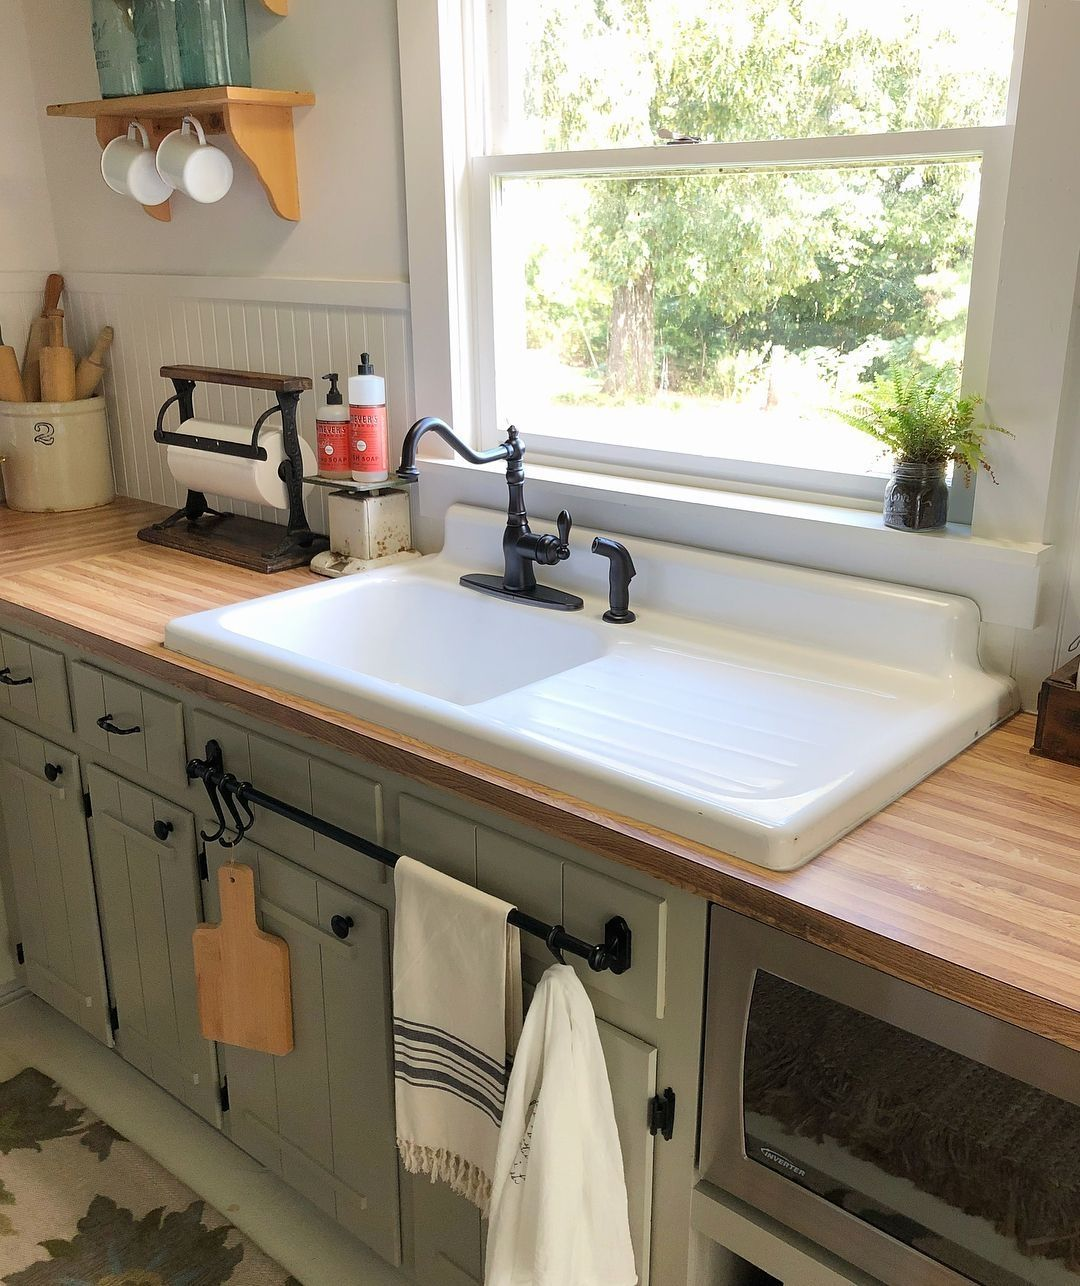 35 Awesome Sink You Can Put In Your Kitchen Homiku Com Farmhouse Sink Kitchen Kitchen Sink Design Best Kitchen Sinks